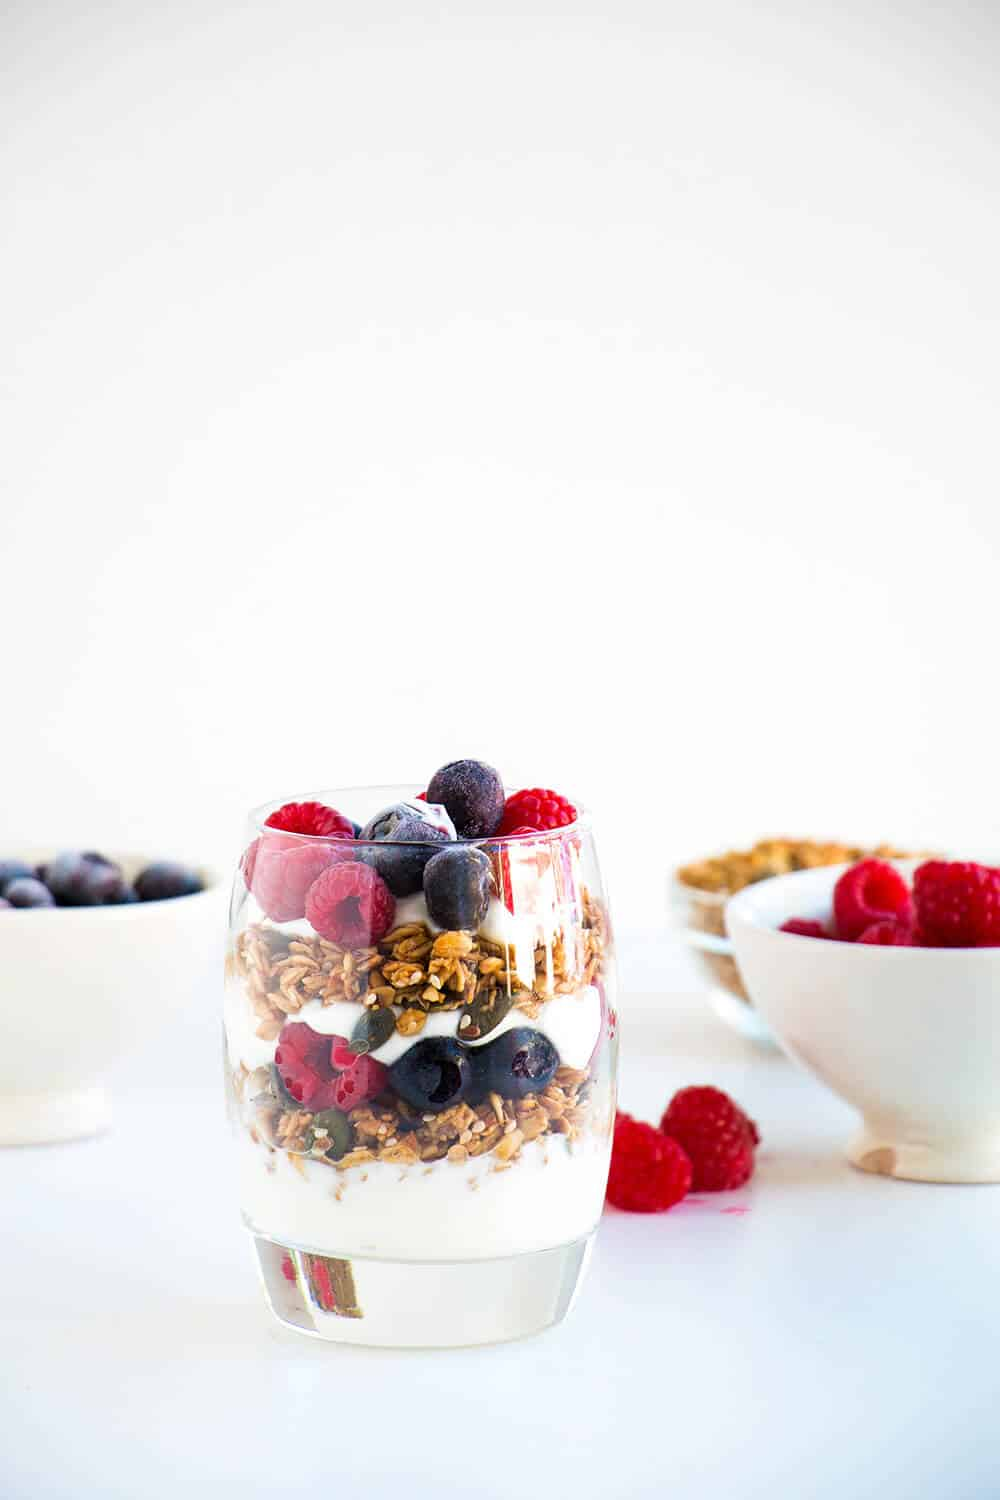 parfait with yogurt, berries and granola on the counter